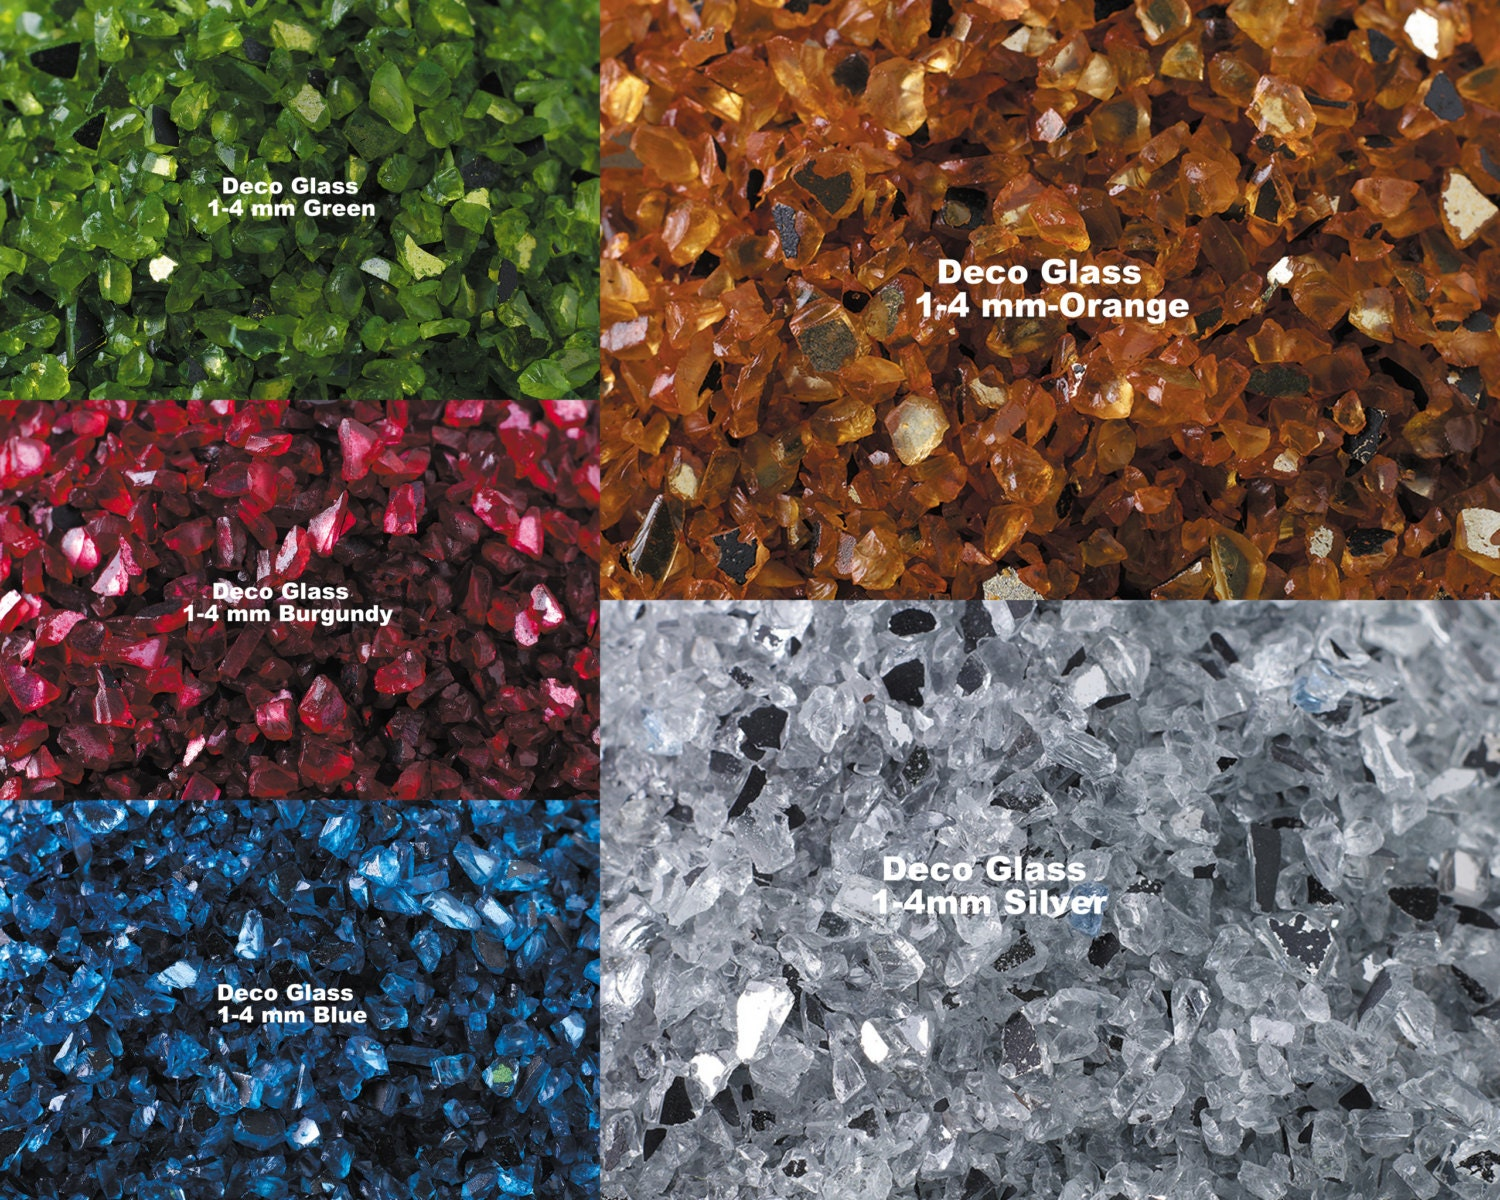 Crushed Deco Glass 9 Colors Vase Fillers 1 4mm Pieces Per